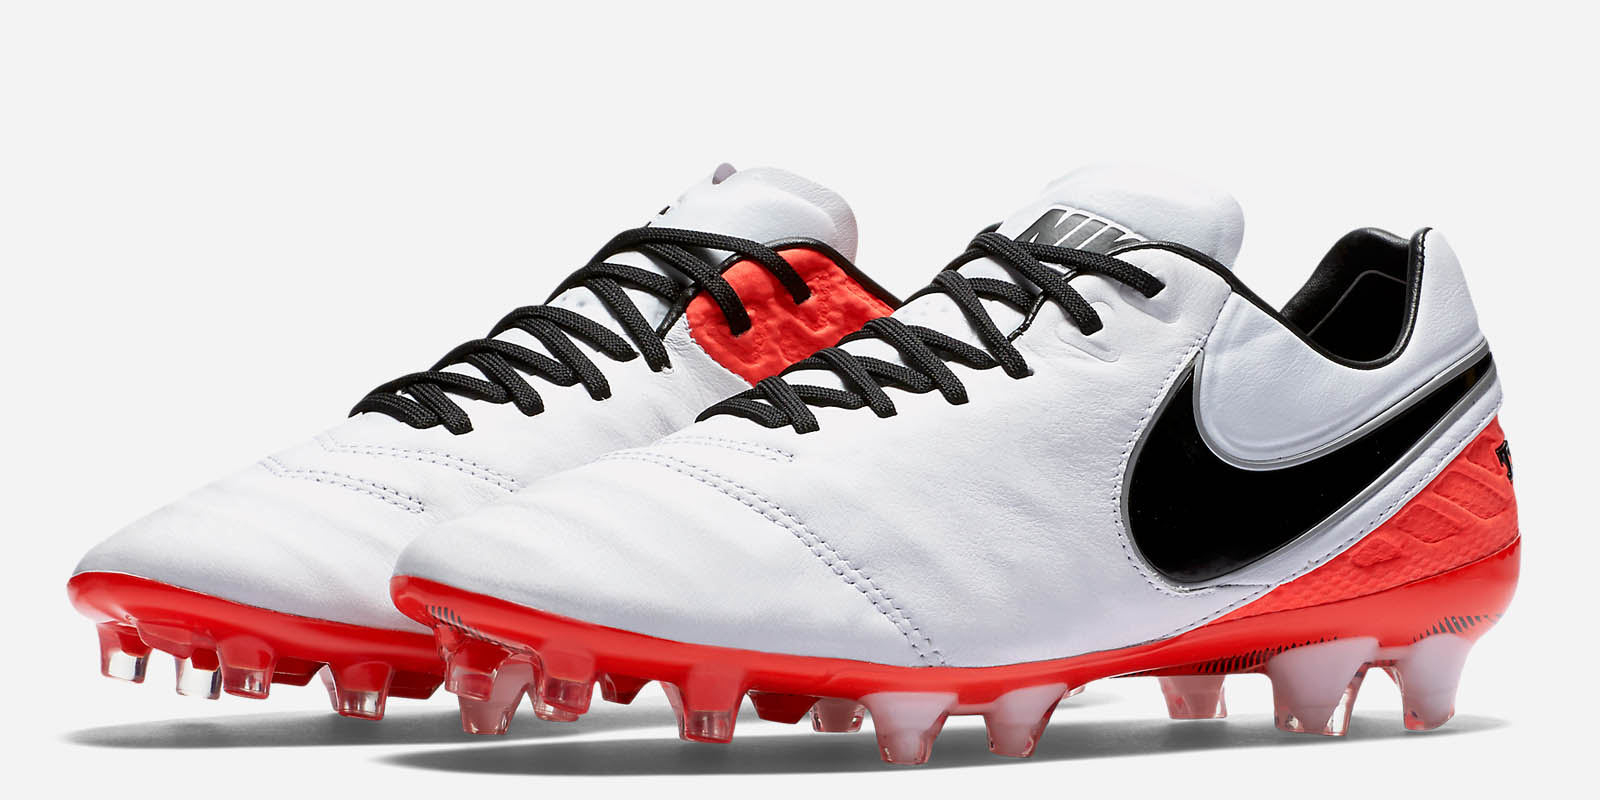 Cool Year39s Women39s World Cup Boot Collection Nike Will Release Two Women